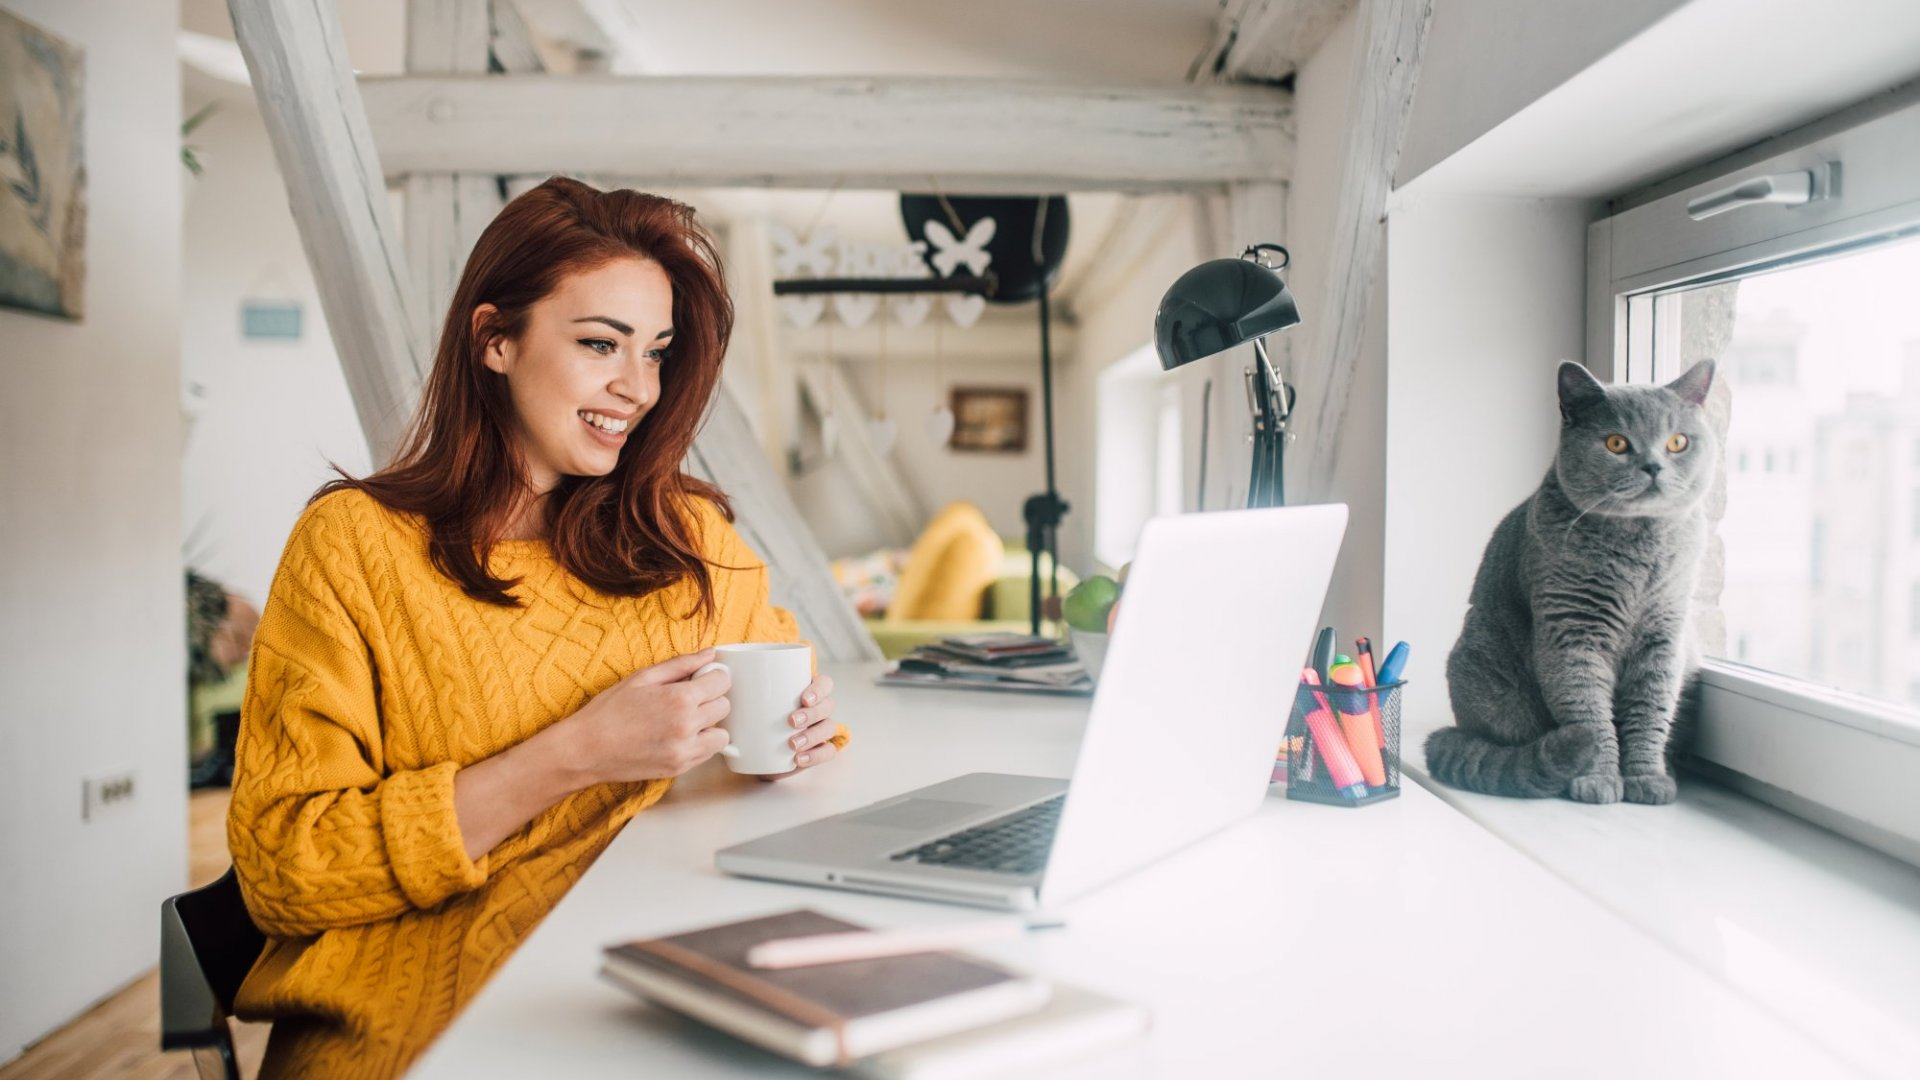 House Hacking: How Millennials Use It to Start Up Their Own Remarkable Businesses